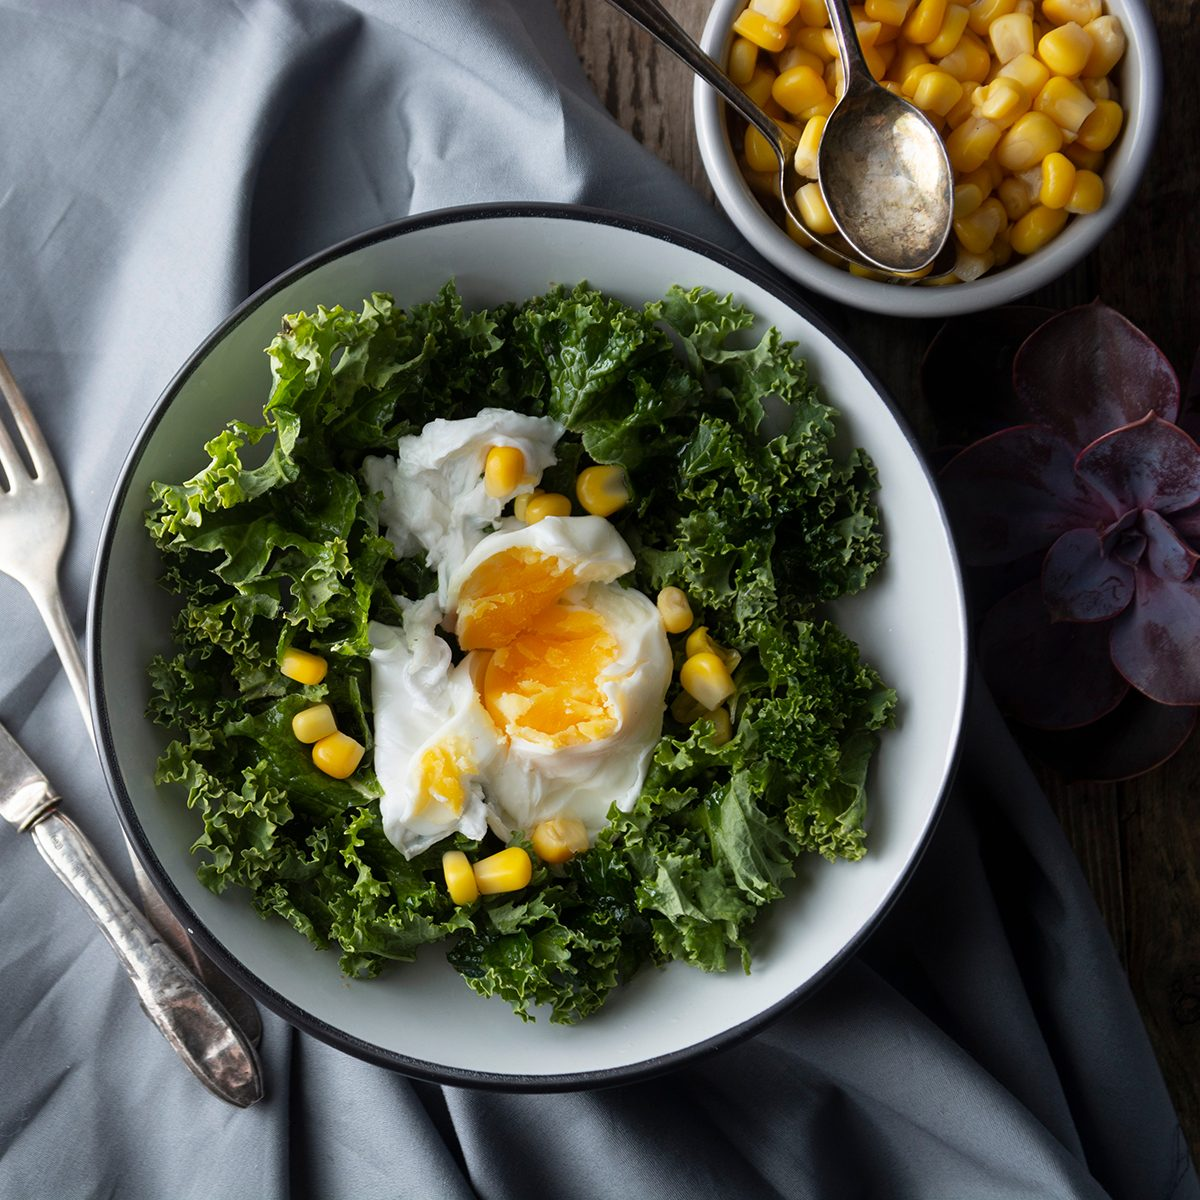 Poached eggs with Kale lettuce, salad. Healthy breakfast or dinner.